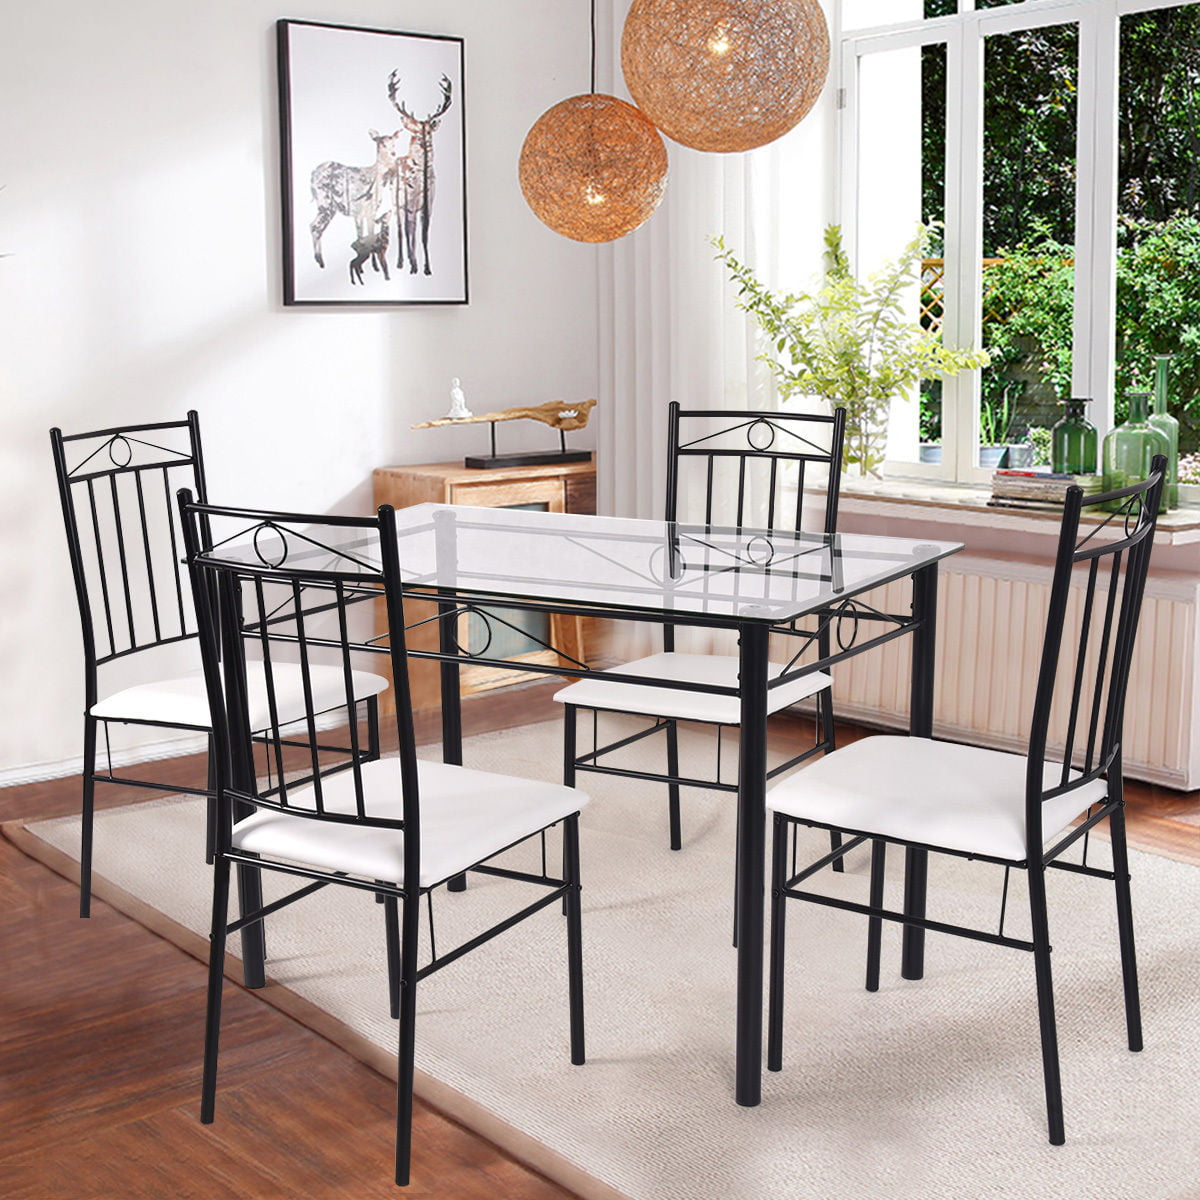 Costway 5 Piece Dining Room Set Glass Metal Table and 4 Chairs Kitchen Breakfast Furniture by Costway